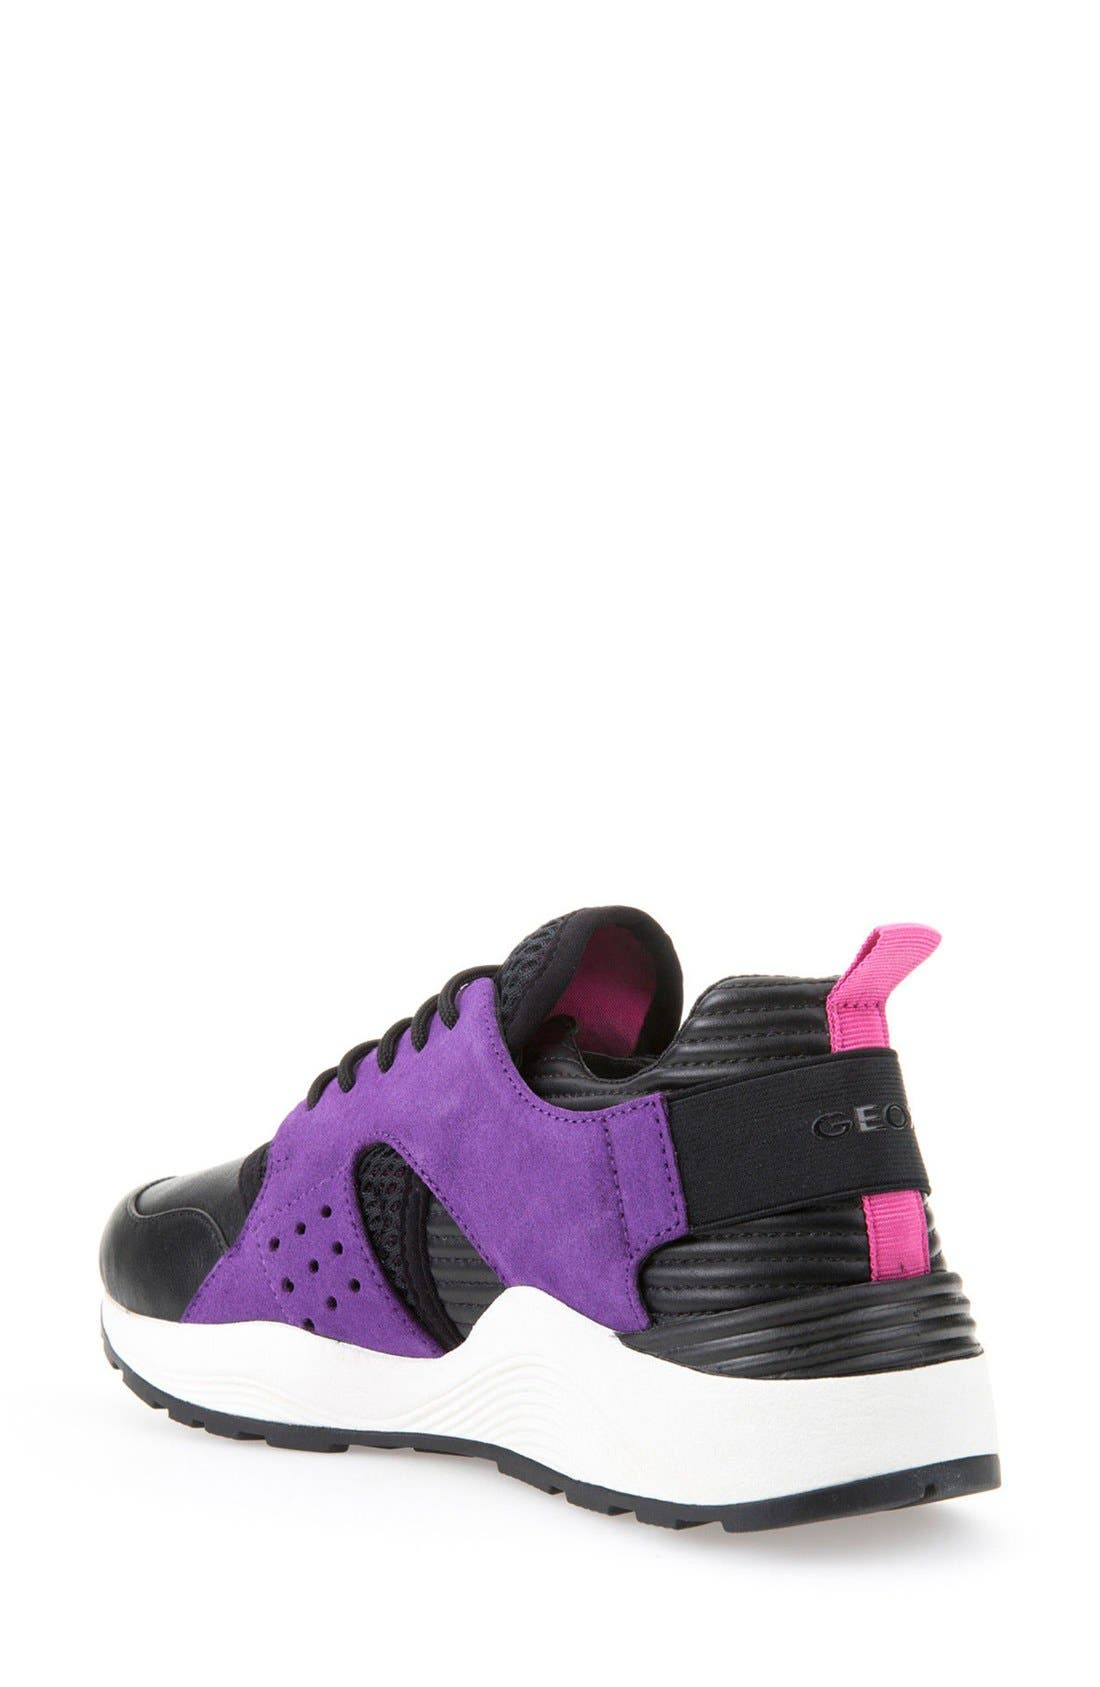 Alternate Image 2  - Geox 'Omaya' Sneaker (Women)